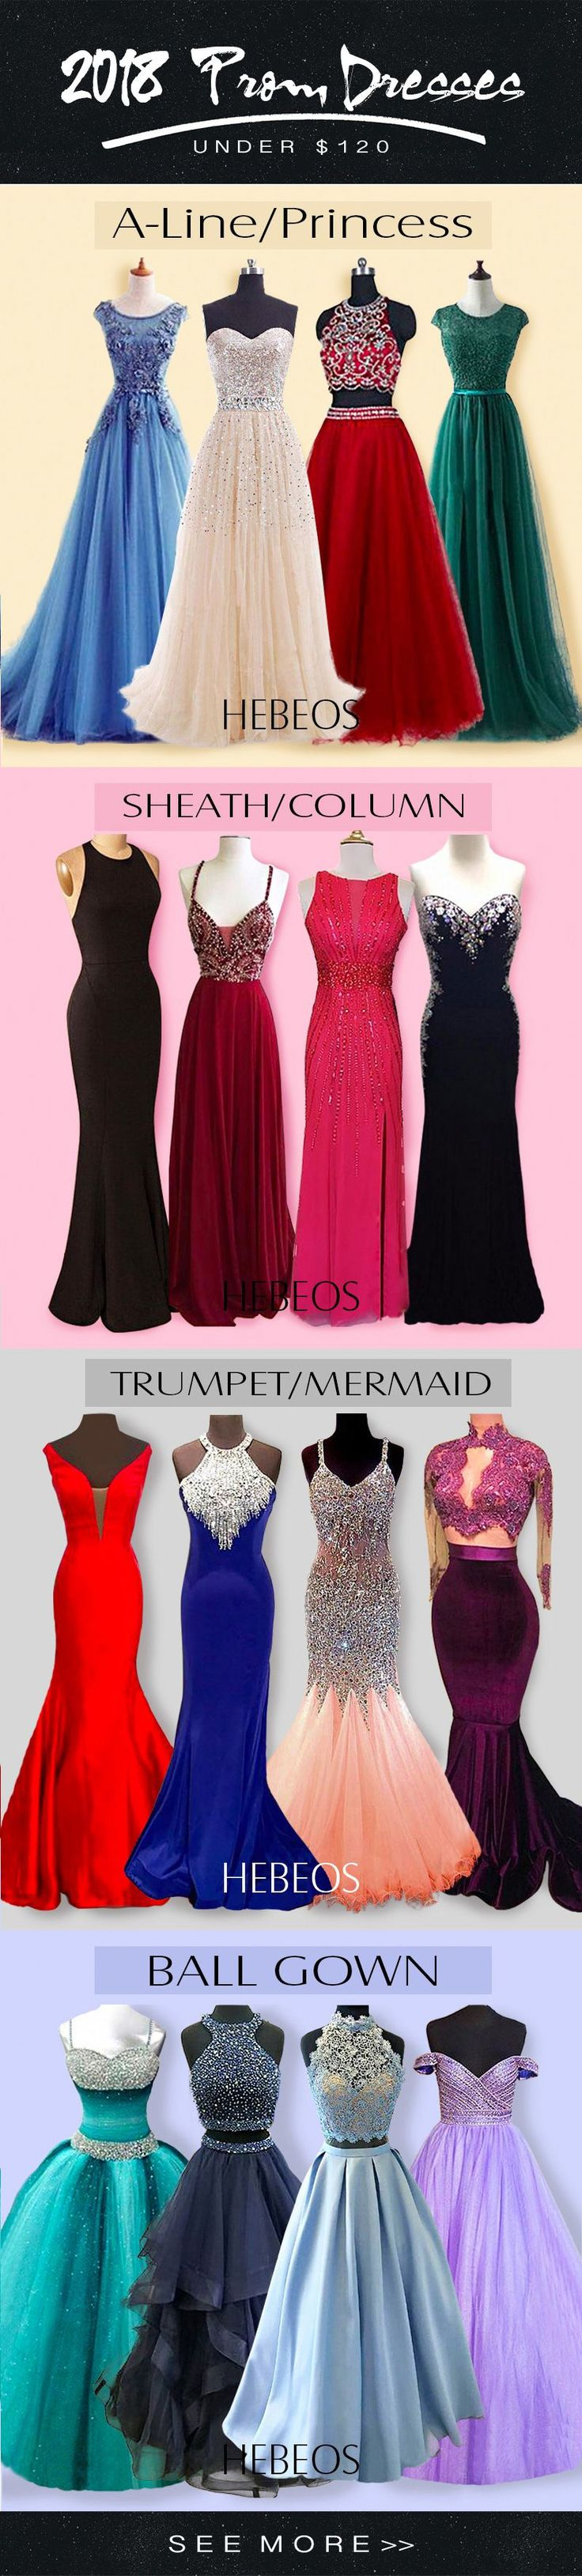 best prom images on pinterest ball gown curve dresses and